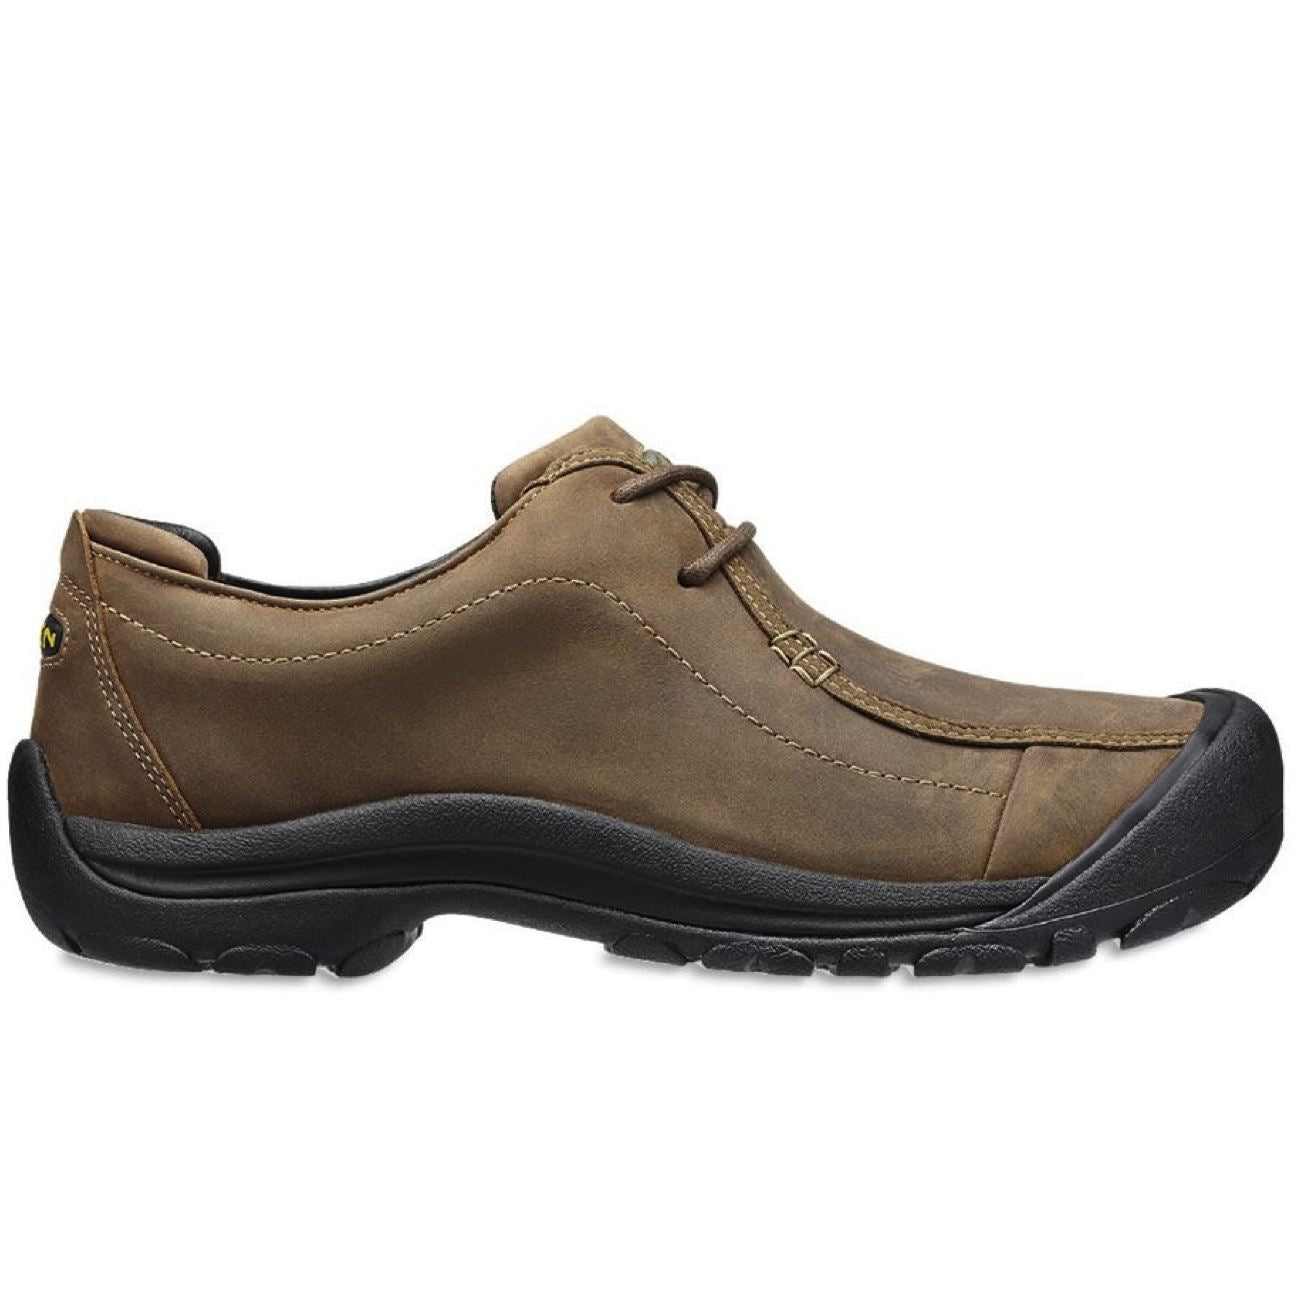 Keen, Portsmouth II, Men's, Oiled Nubuck Leather, Dark Earth Shoes Keen Dark Earth 13